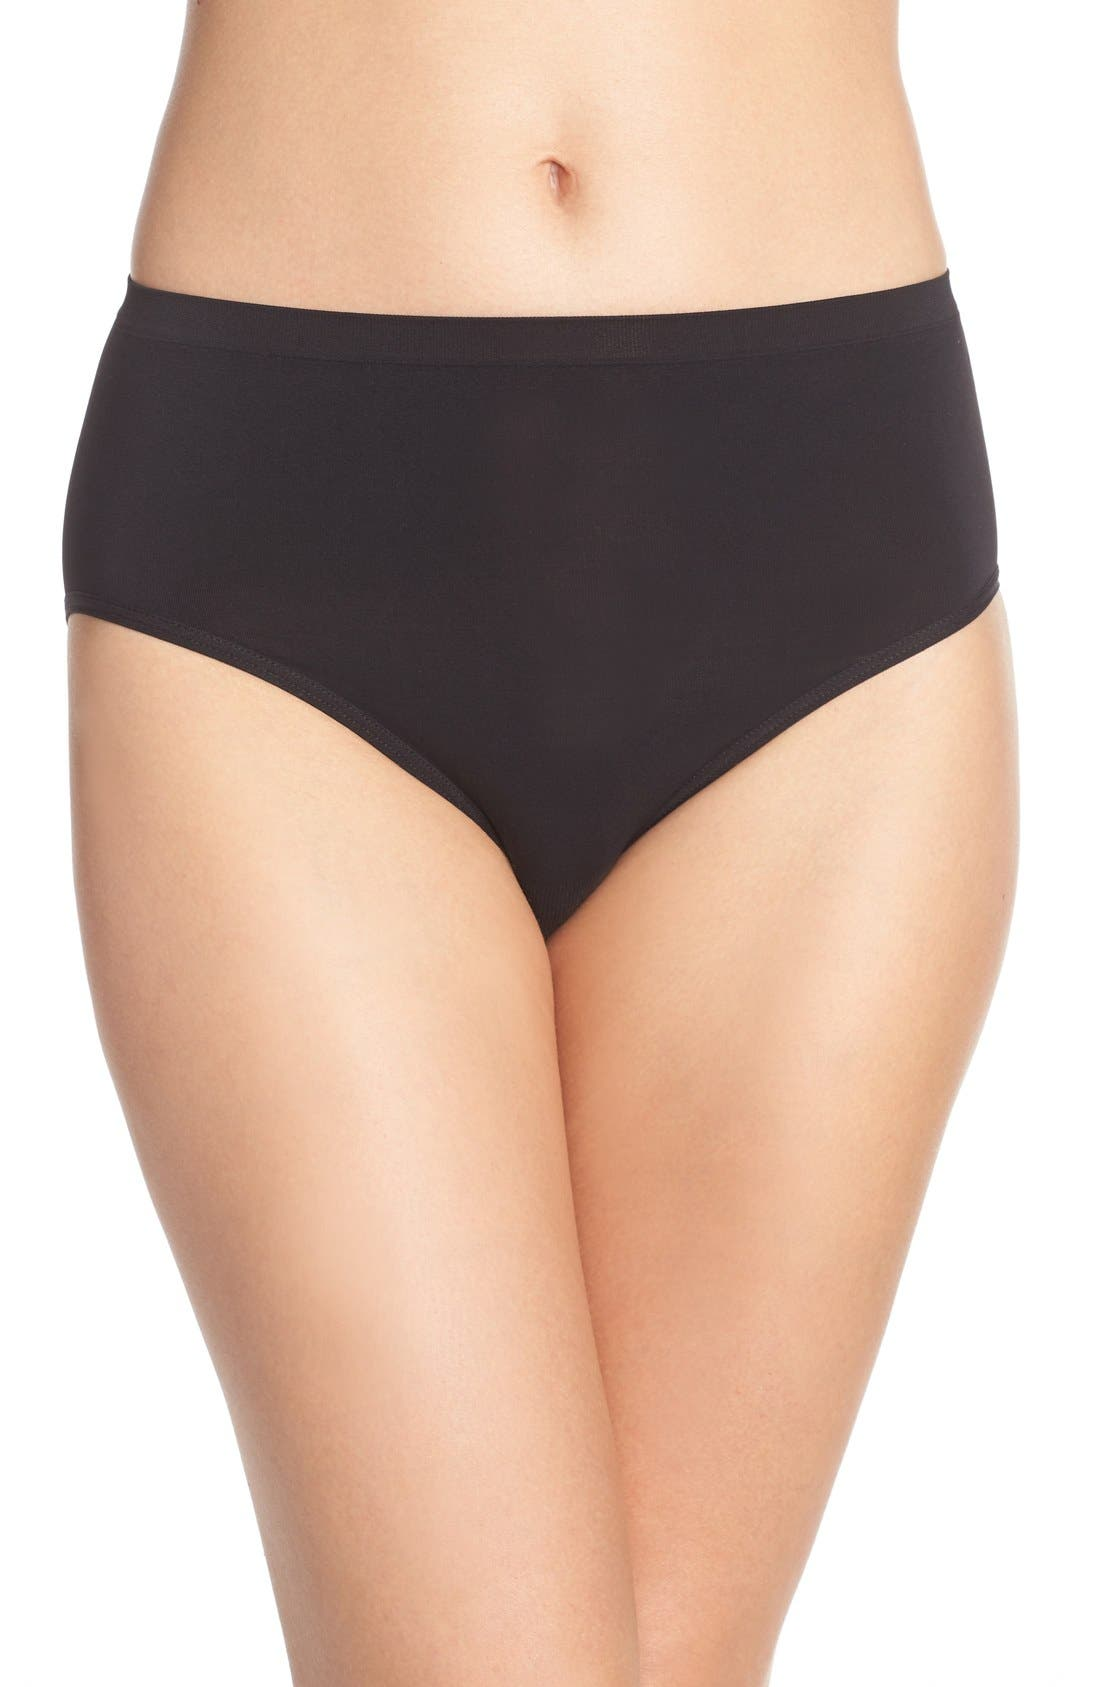 Nordstrom Lingerie Seamless Full Briefs (4 for $34)